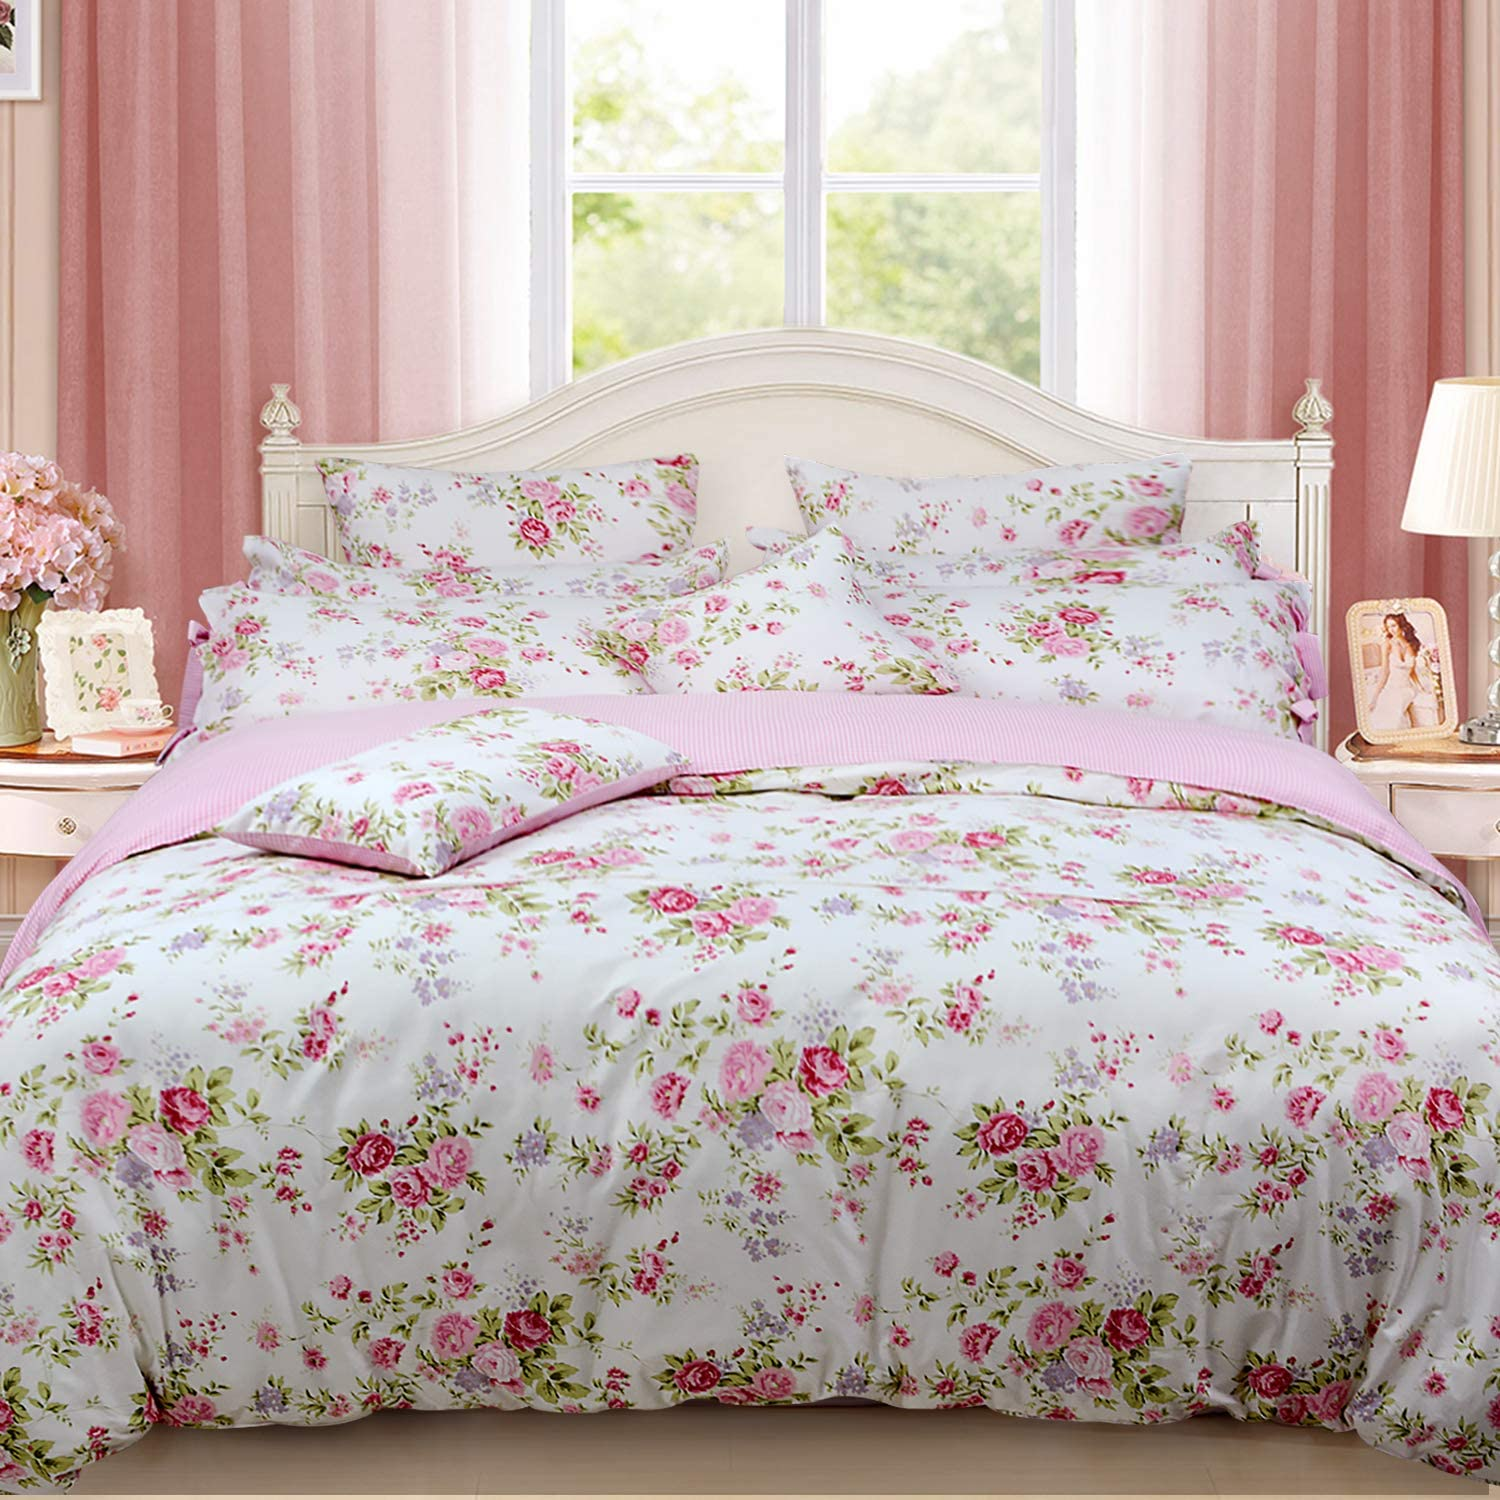 FADFAY Shabby Rose Floral Duvet Cover Pink Plaid Girls Bedding Set100% Cotton Hypoallergenic Bed Sheet Set,5Pcs (1 Duvet Cover +1 Fitted Sheet+ 1 Flat Sheet +2 Standard Pillowcases), Full Size